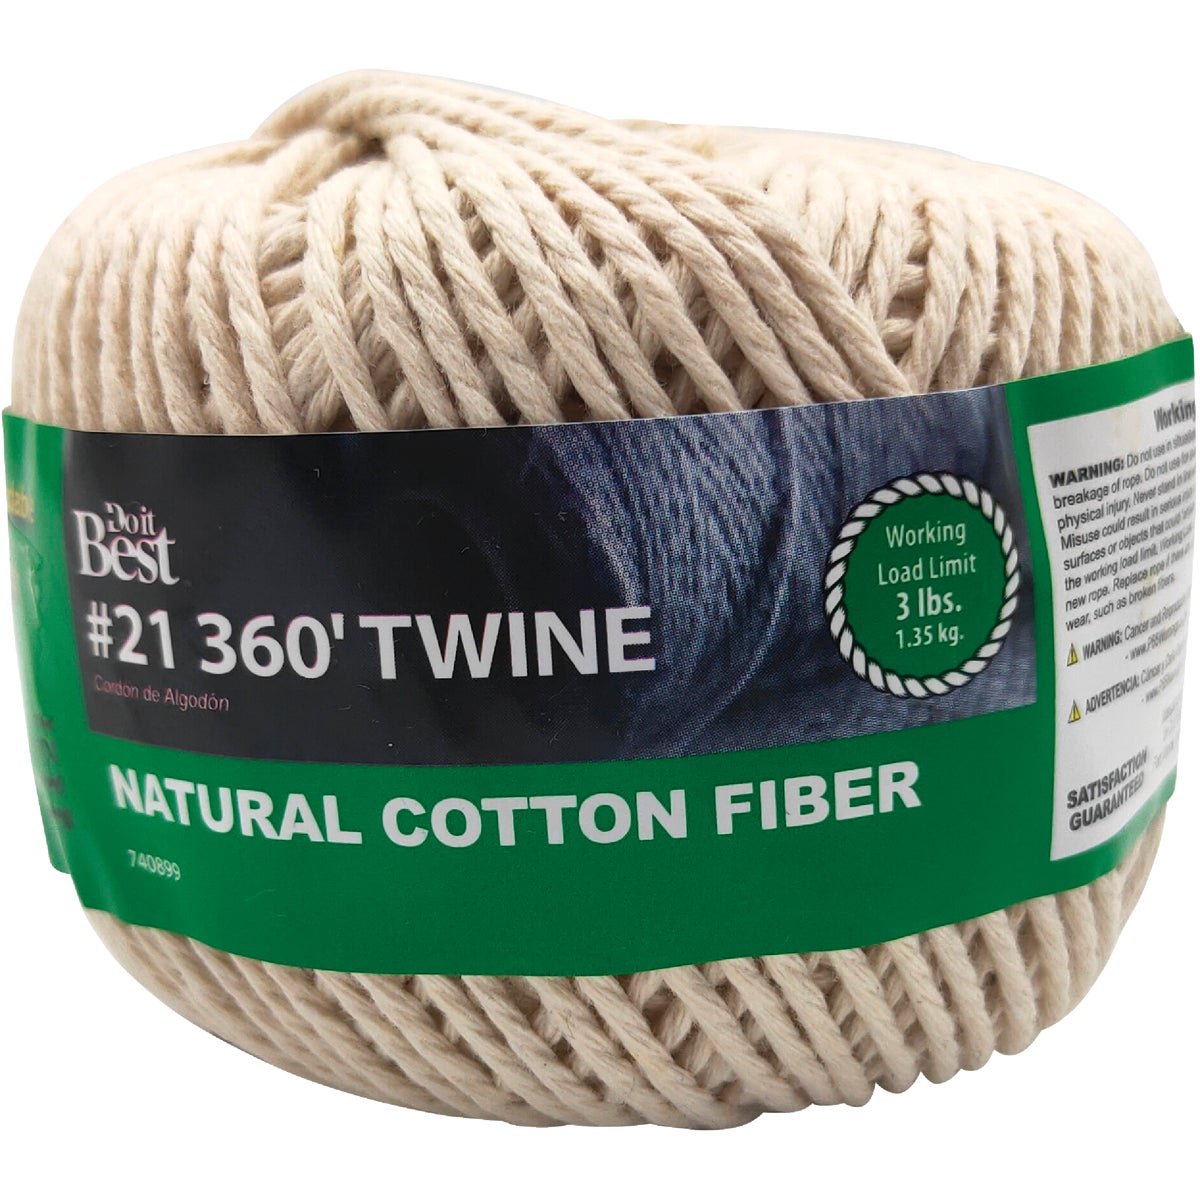 #21 360' COTTON TWINE - 740899 by Do it Best